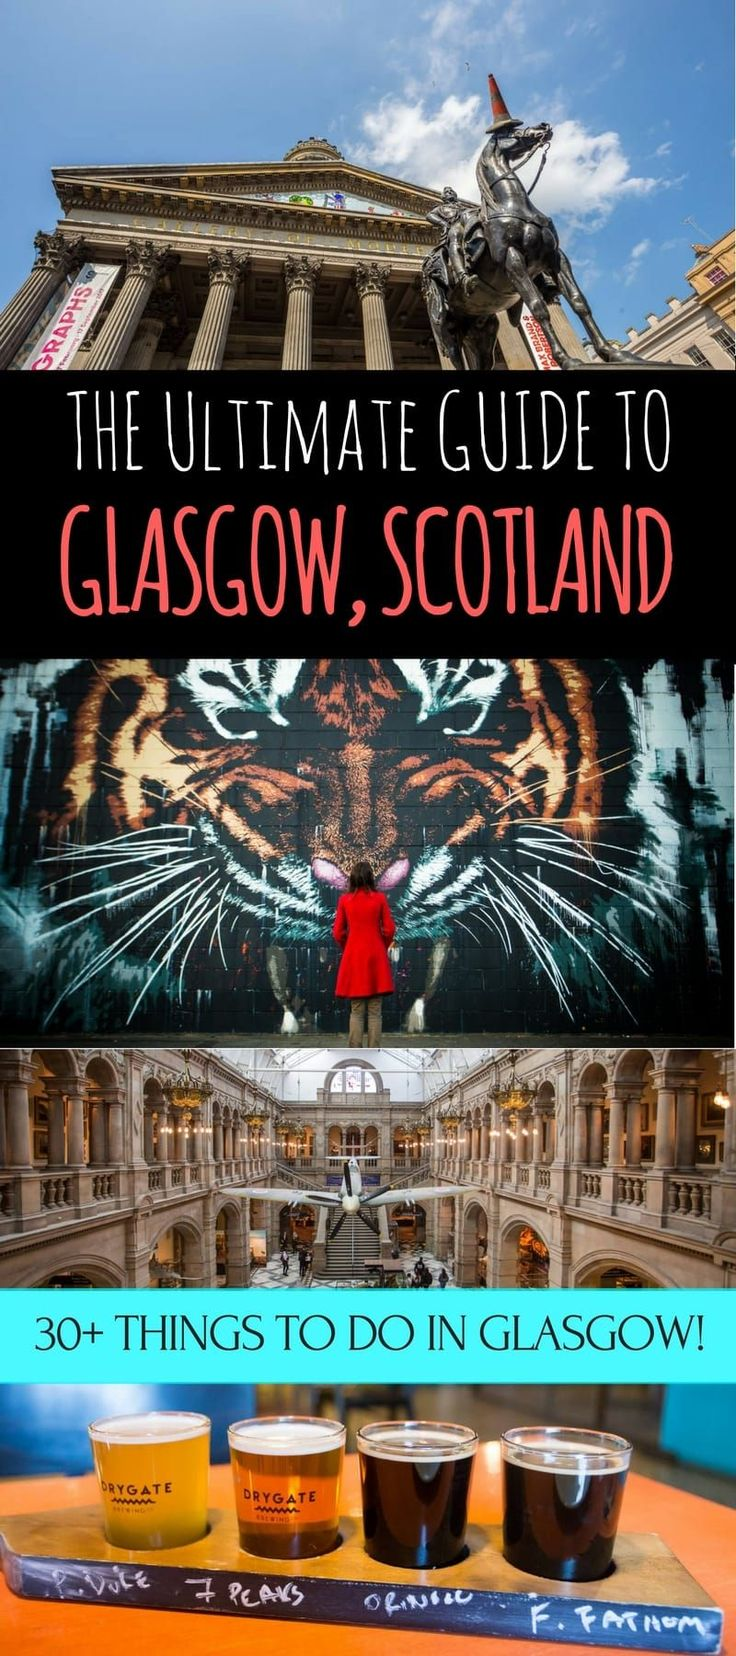 A guide to visiting Glasgow Scotland, Scotland's largest city. Our guide will help you decide how to get around, things to do in Glasgow, where to eat, where to drink, and how to make the most of your time in Glasgow! #Glasgow #Glasgowguide #Scotland #travel